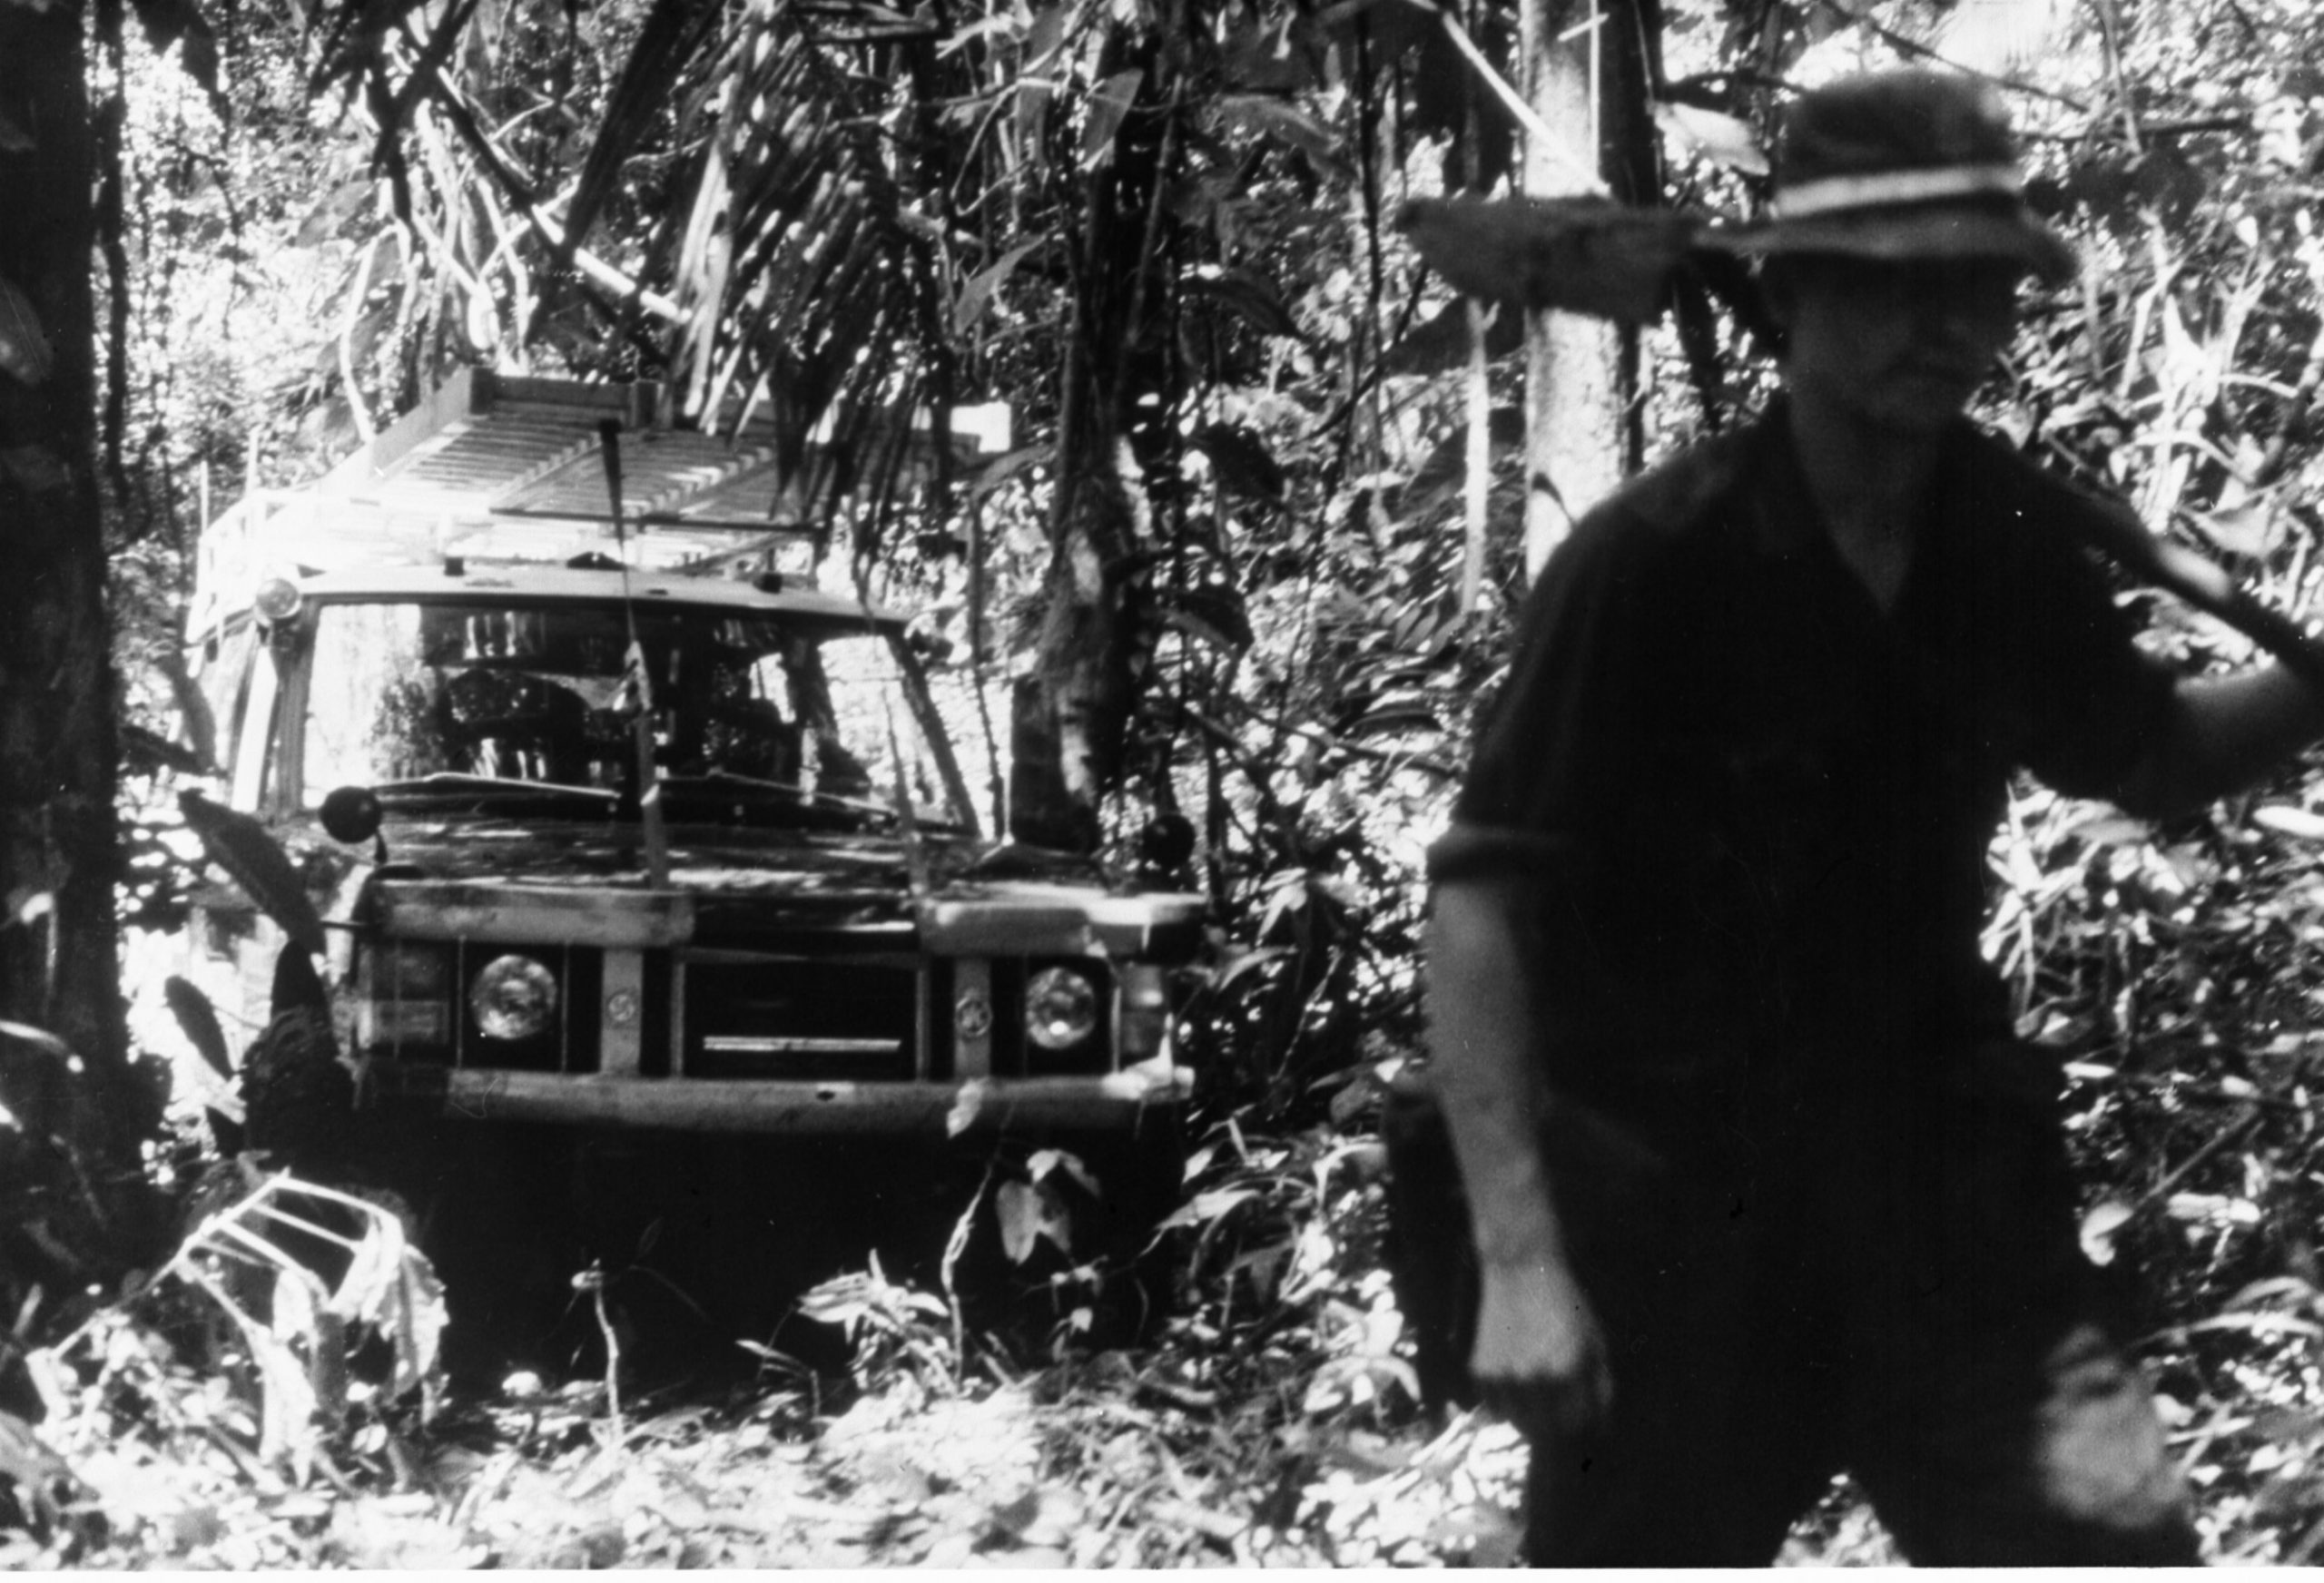 1972 land rover range rover darien gap jungle